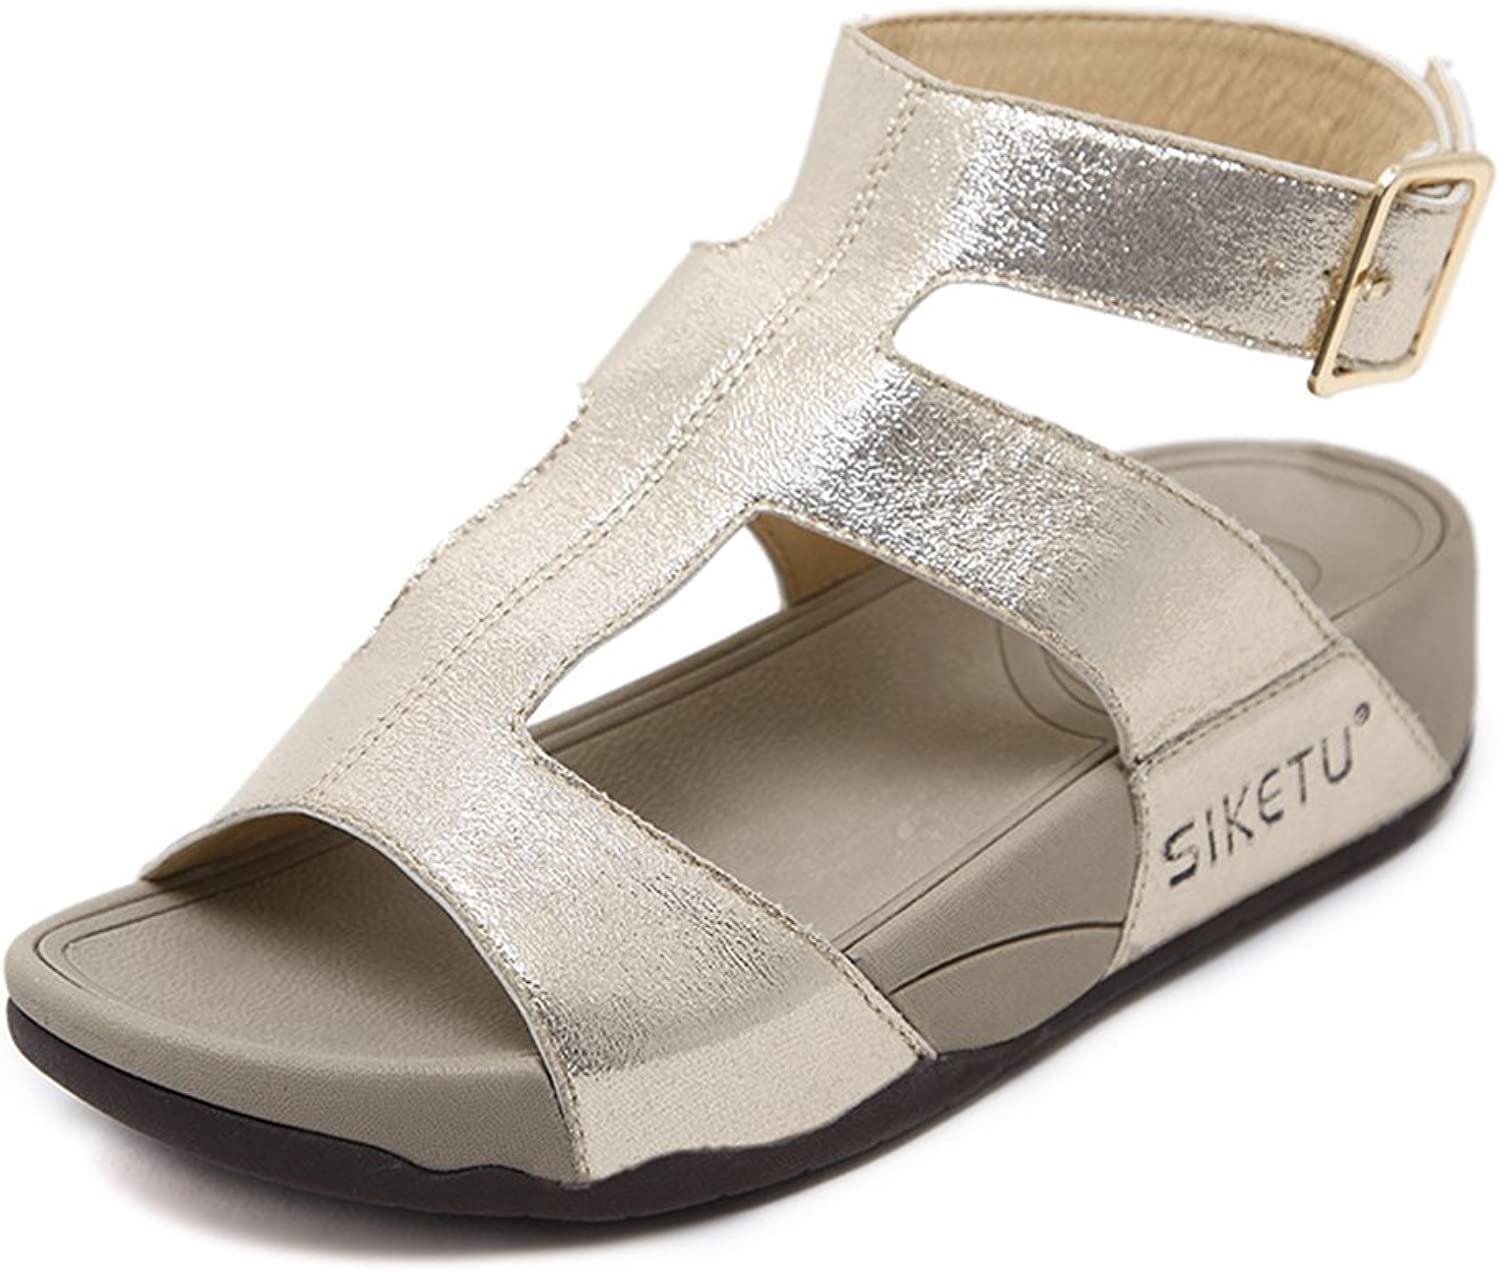 Tuoup Womens Ankle Strap Fashion Leather Sandals Sandles